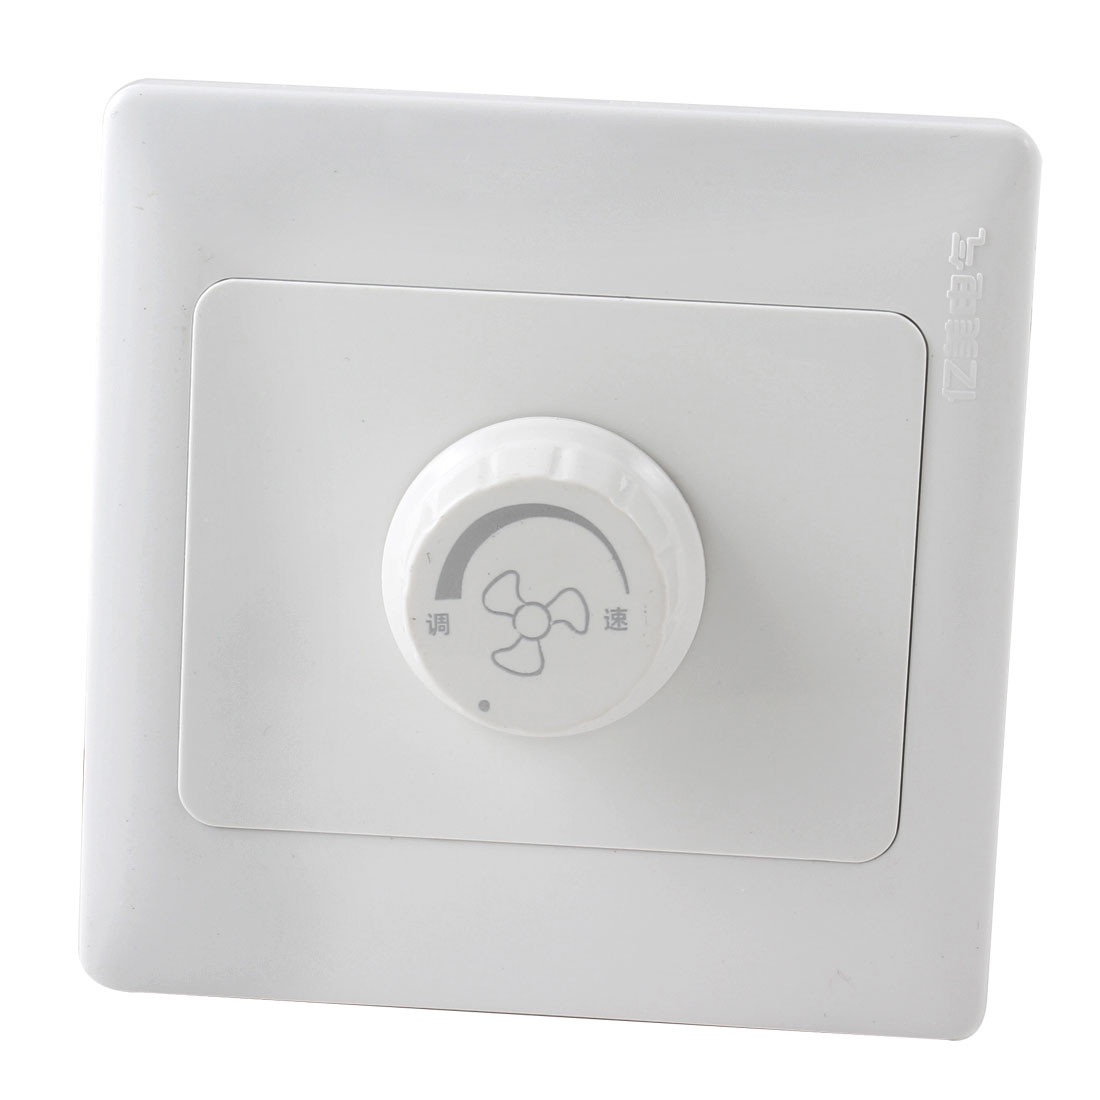 AC 250V 50/60Hz 250W Plastic Wallplate Panel Speed Control Switch White